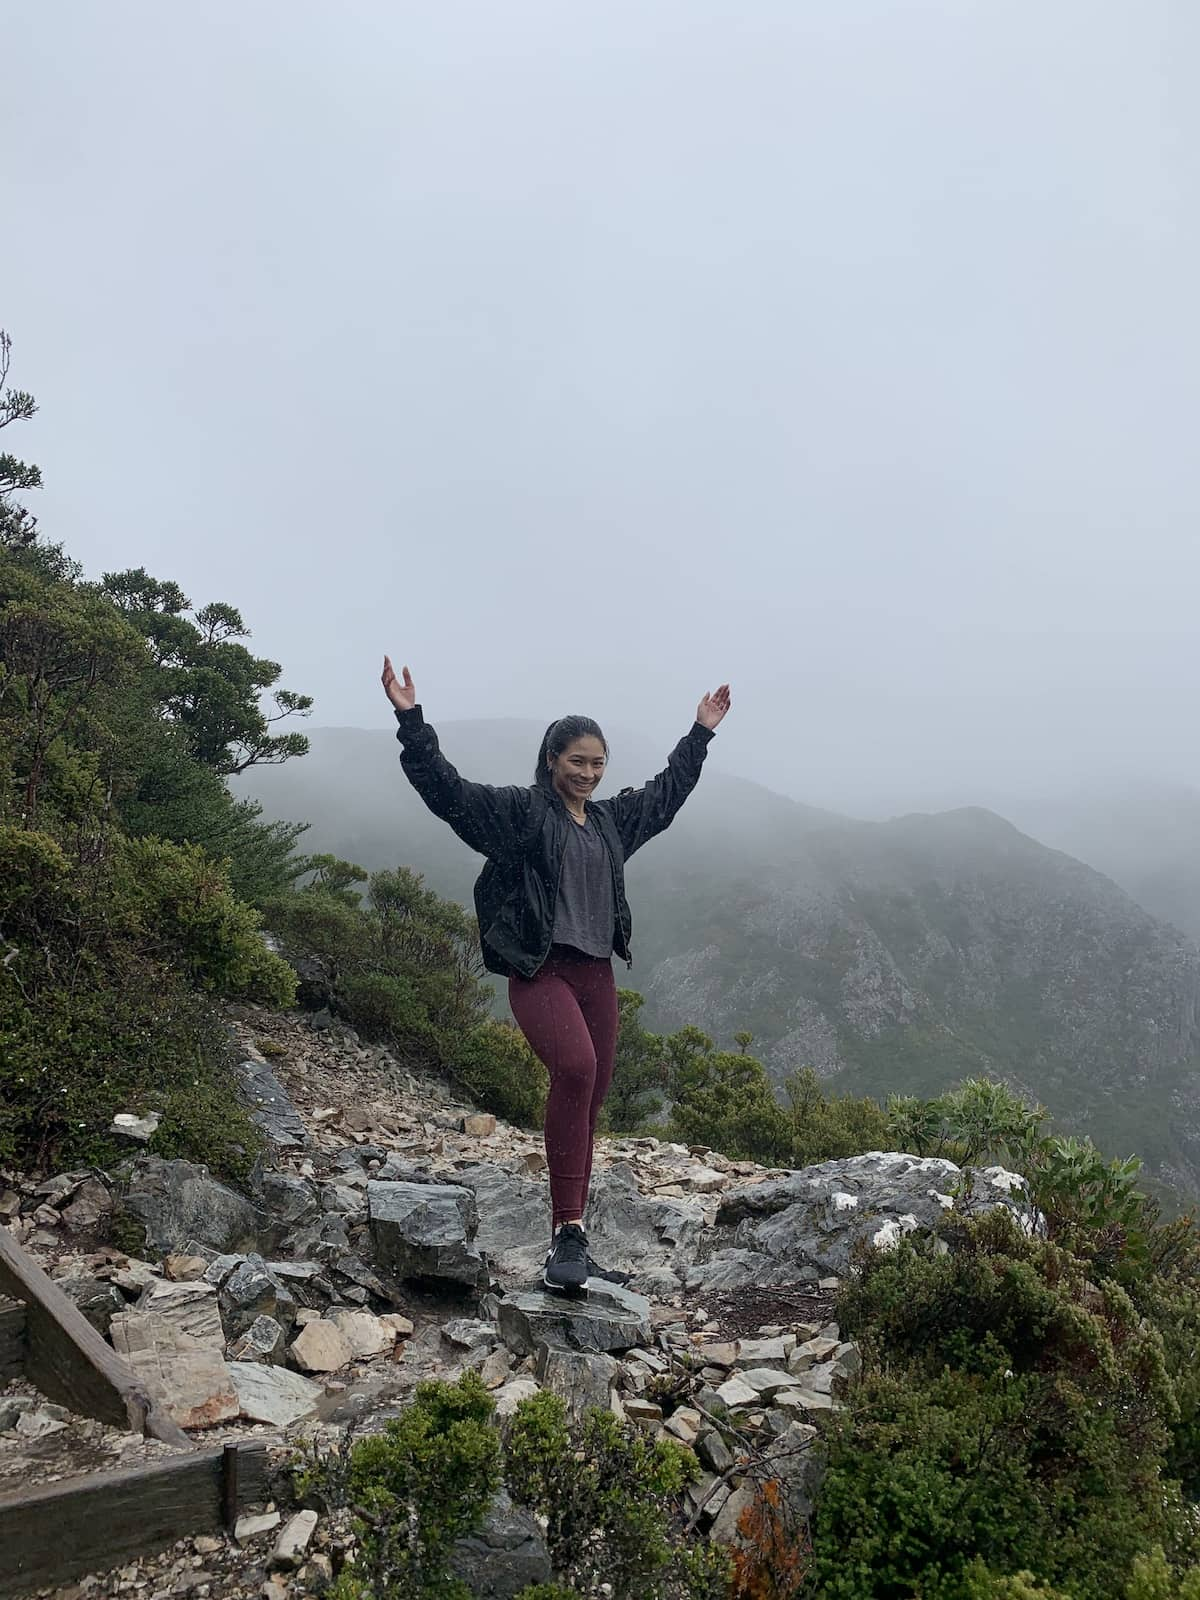 A woman with dark red leggings and a black jacket, with her hands in the air. She's standing on mountainous terrain and it's really cloudy in the background